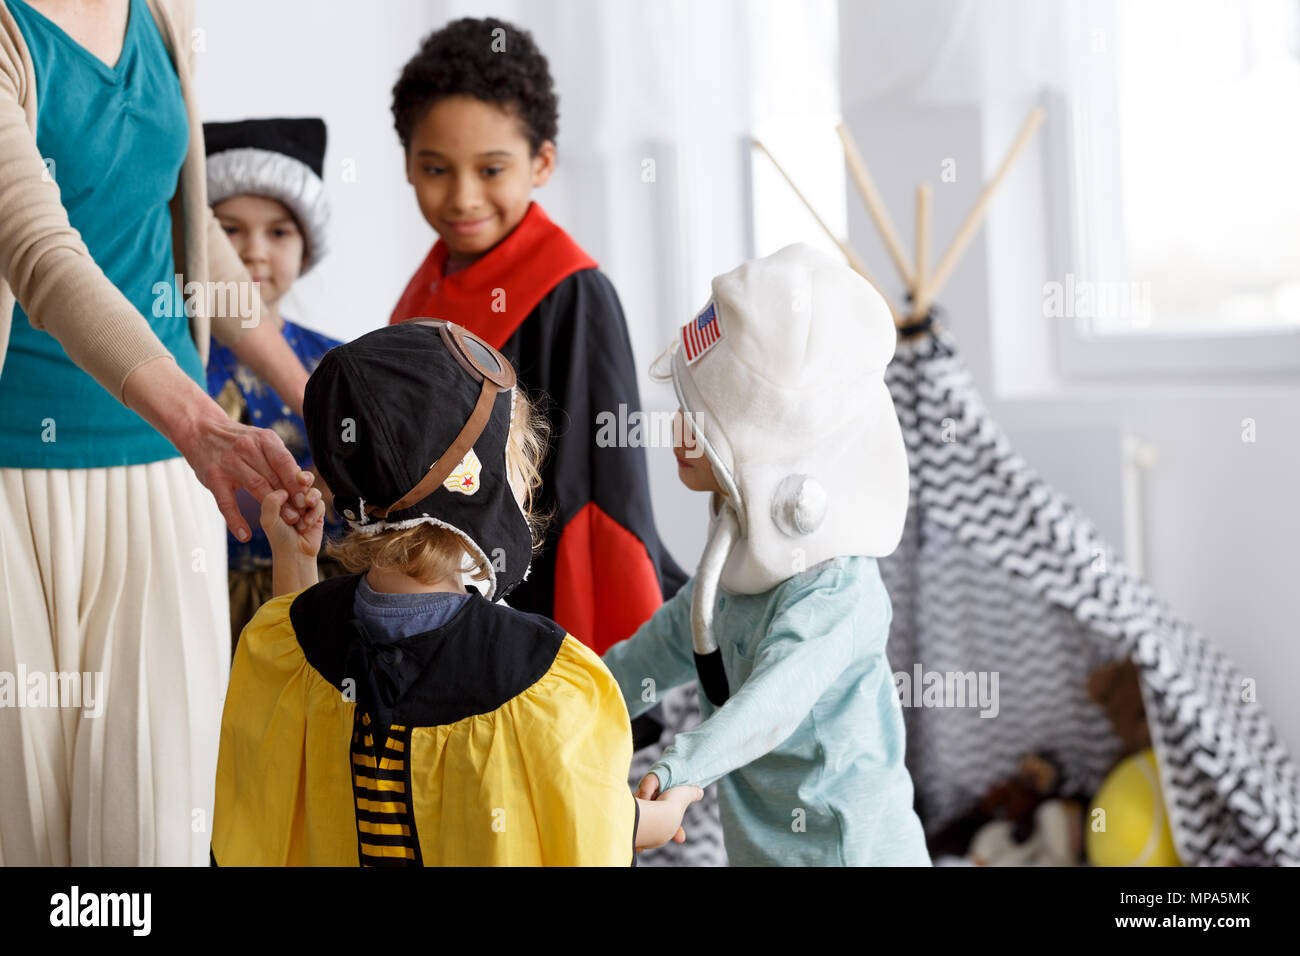 Group of children in costumes dancing in a circle - Stock Image